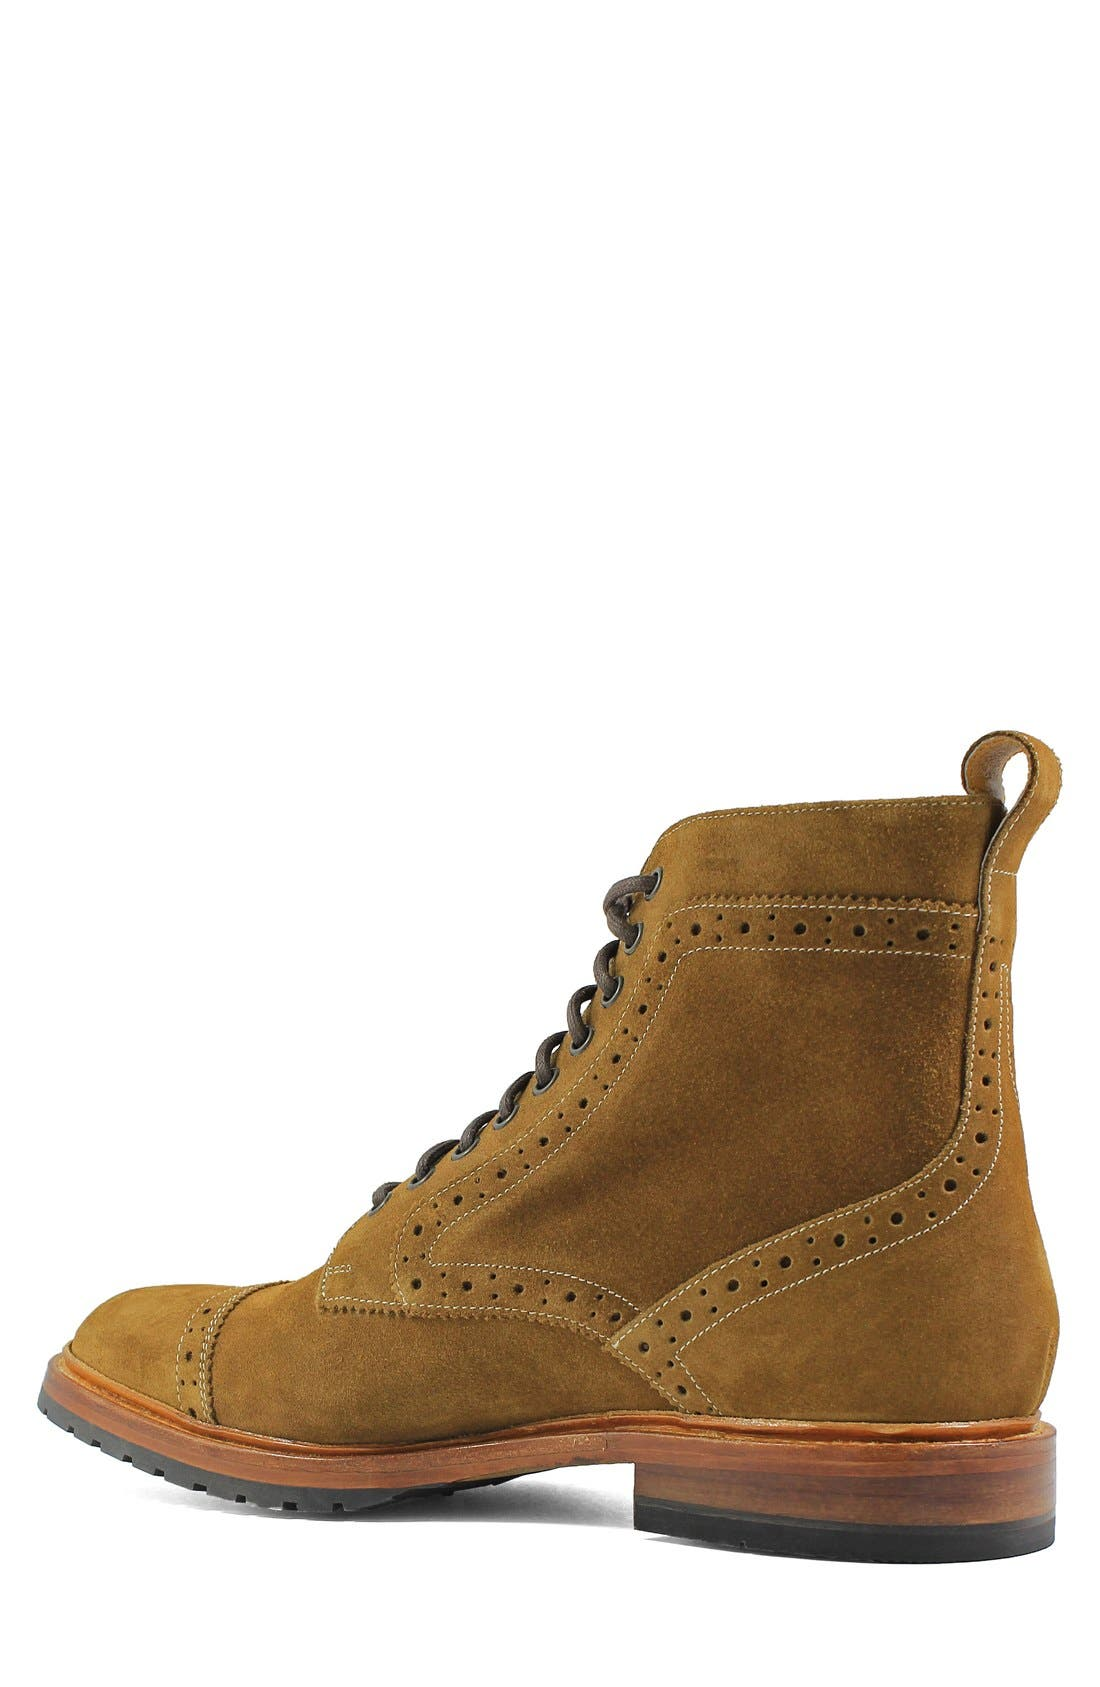 Madison II Cap Toe Lace Boot,                             Alternate thumbnail 2, color,                             Tan Suede